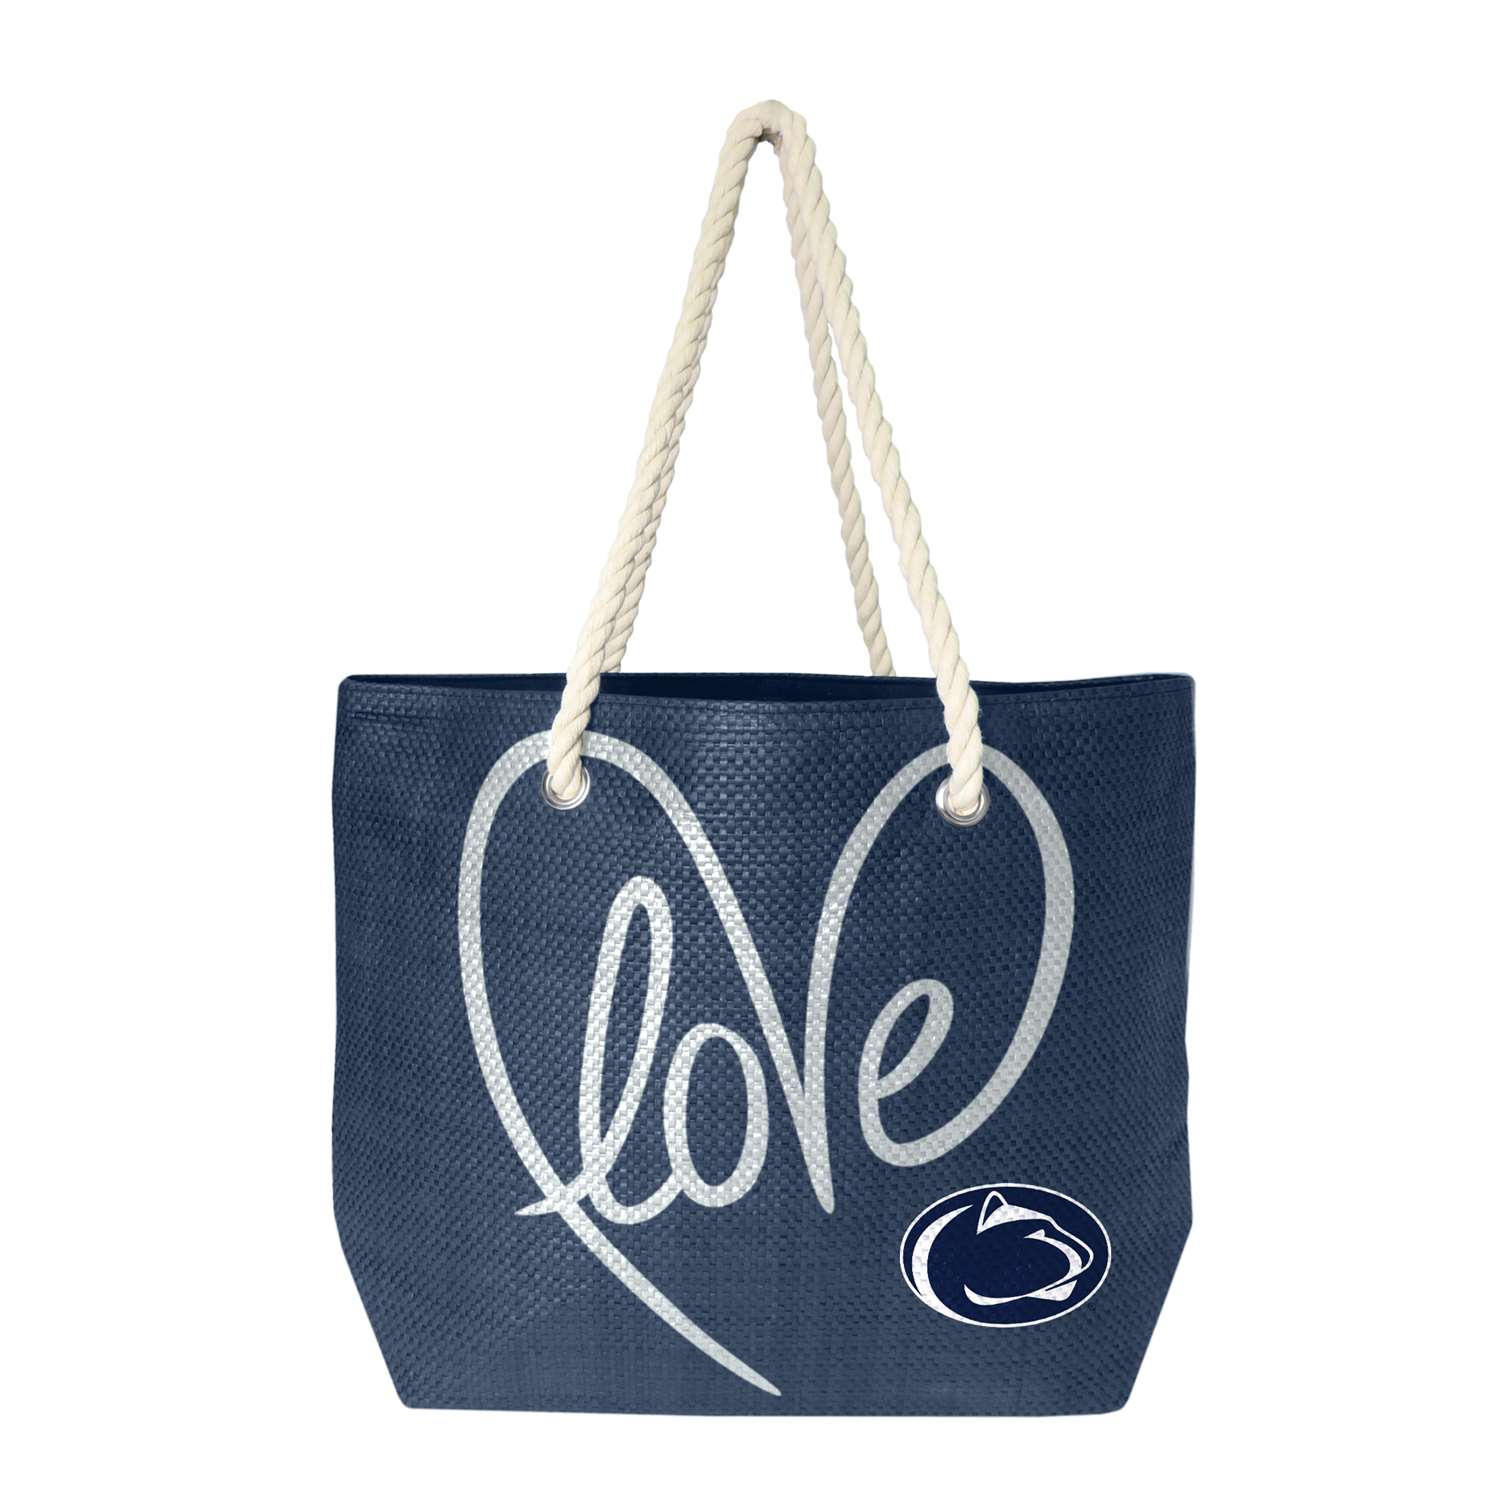 Ncaa College California University Of Pennsylvania Cup Vulcans Purses Wristlets Totes - 100651-psu-navy-slvr - Pennsylvania State University Rope Tote 100651-PSU-NAVY-SLVR